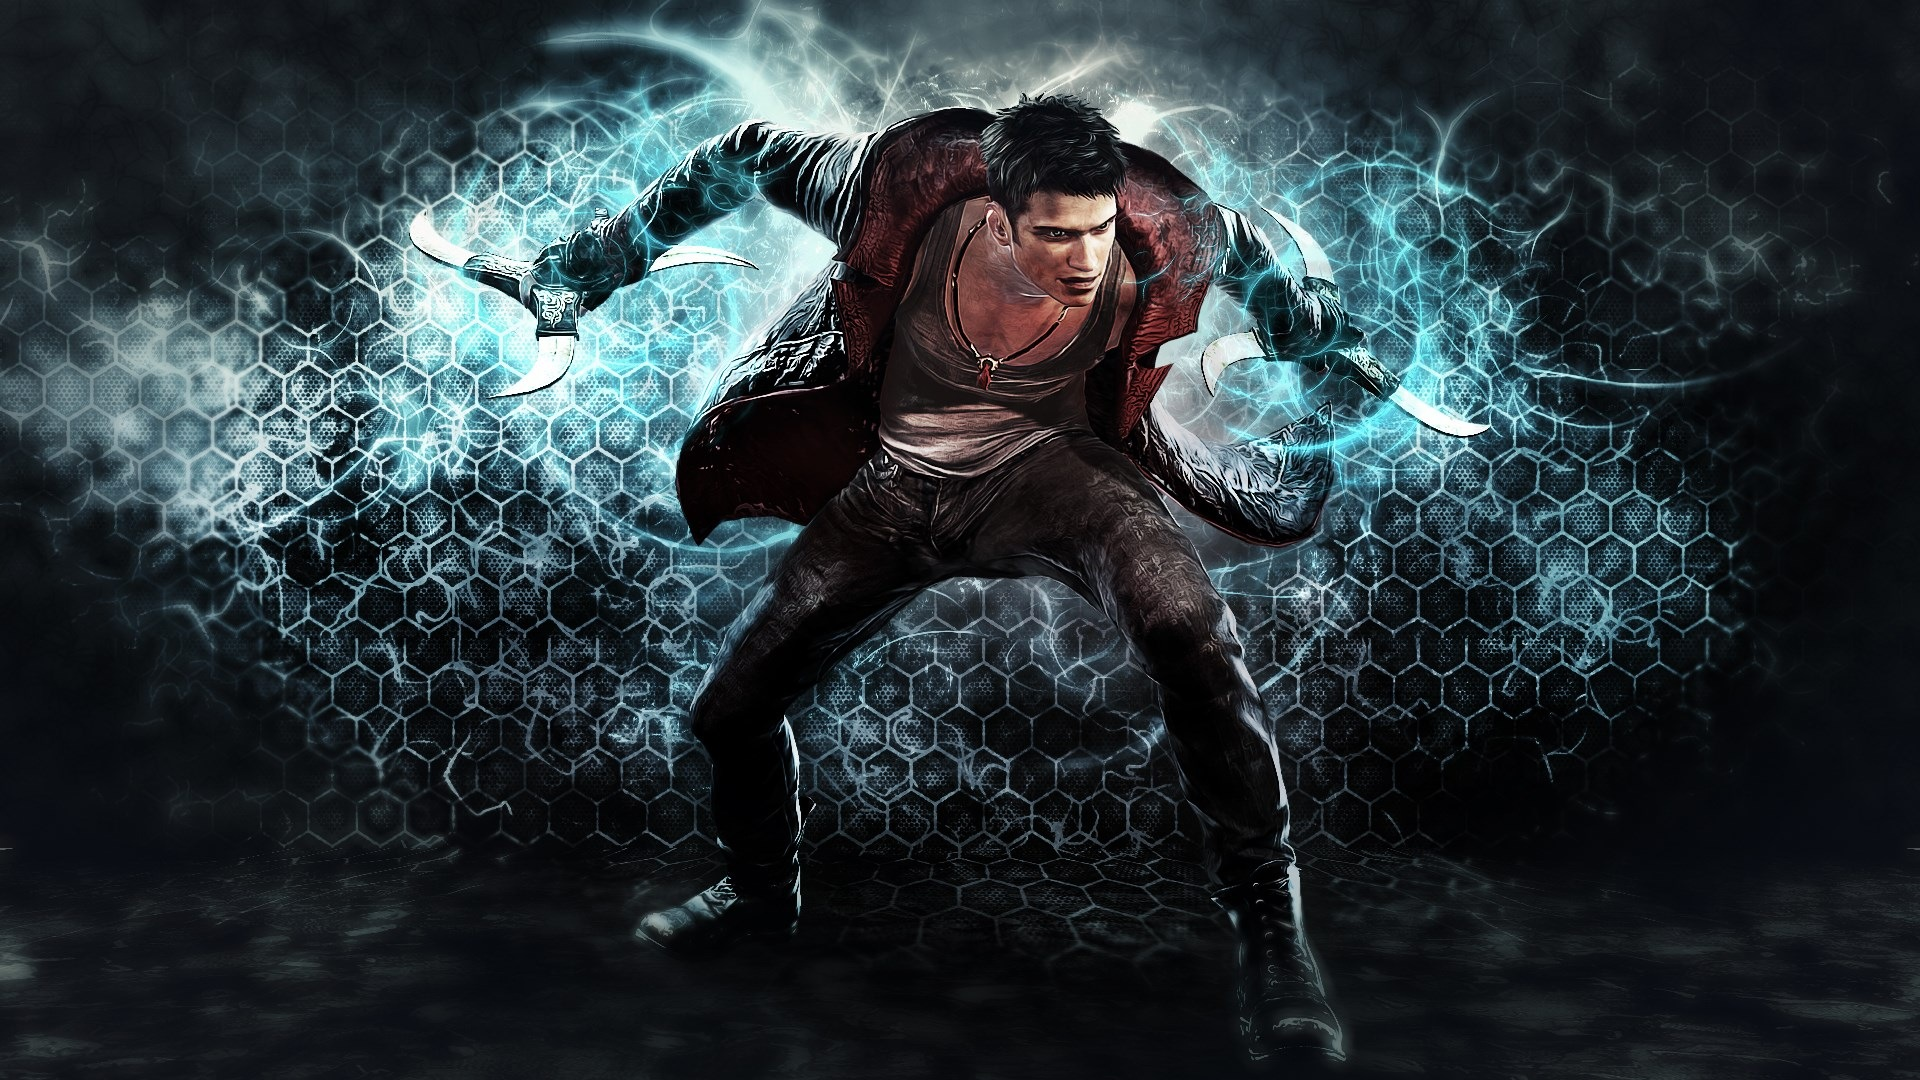 Free Download Download Devil May Cry 5 Wallpaper Hd High